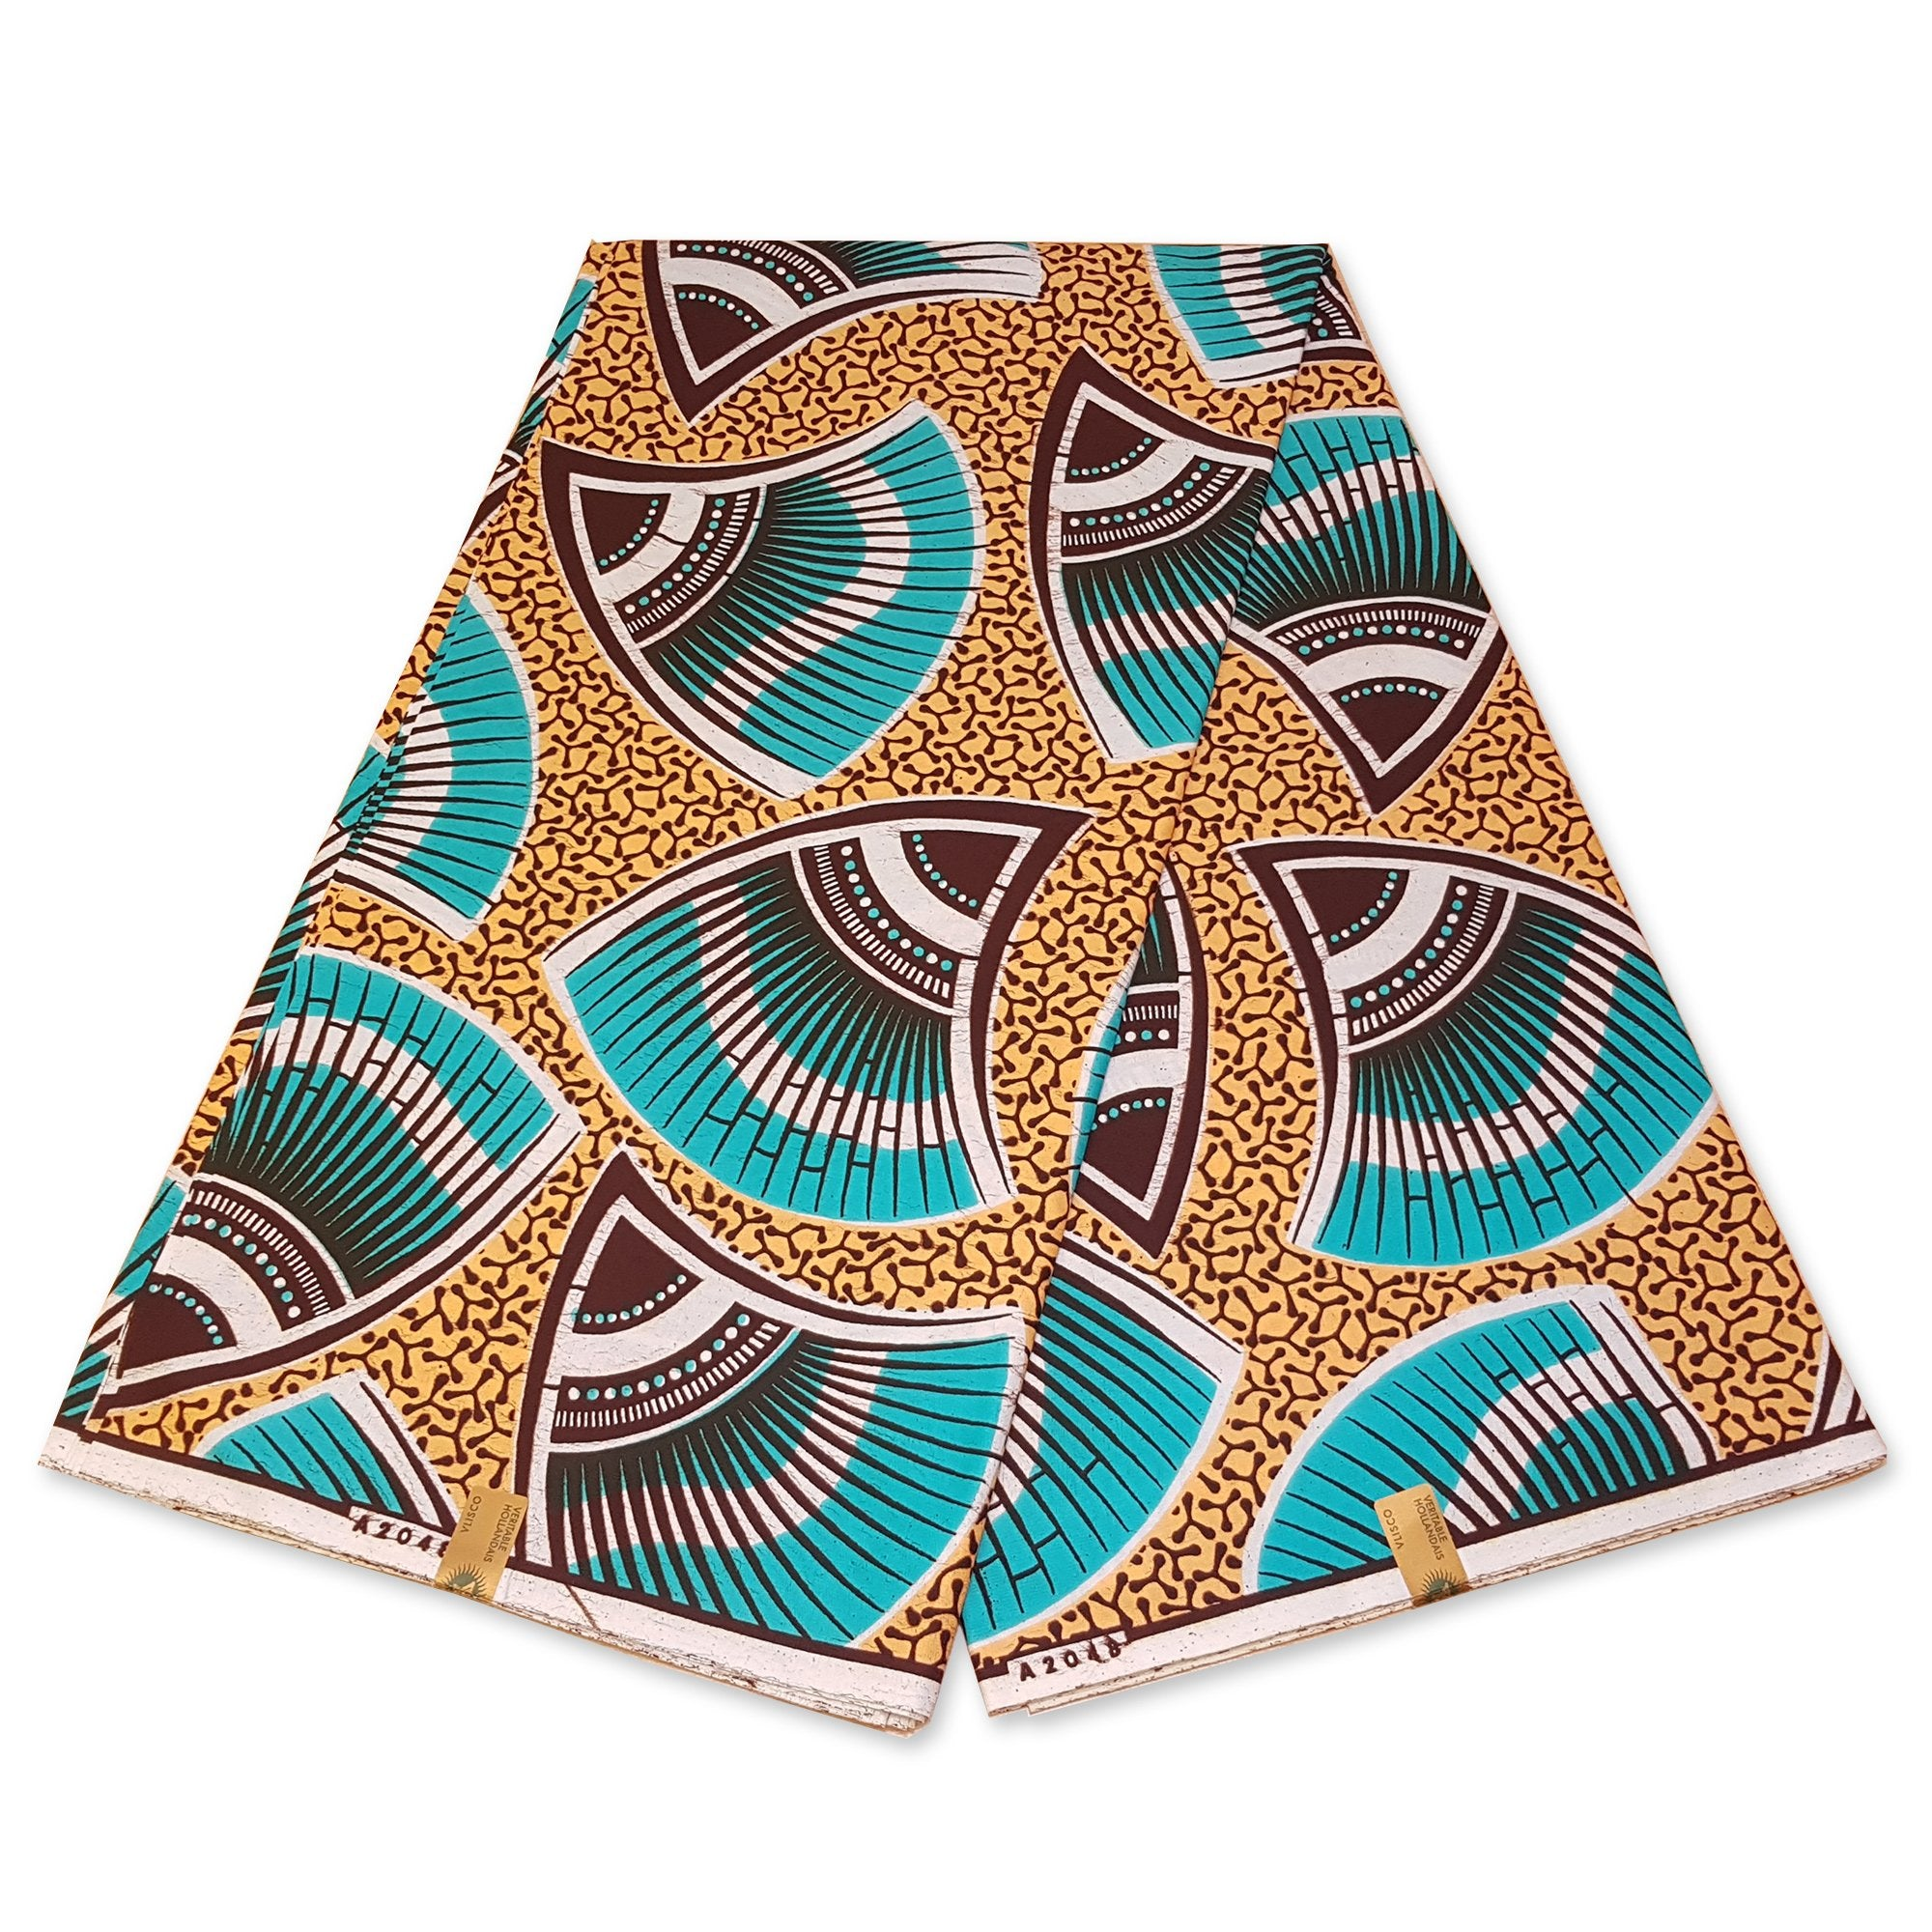 VLISCO Hollandais Wax print fabric - GREEN SHELL